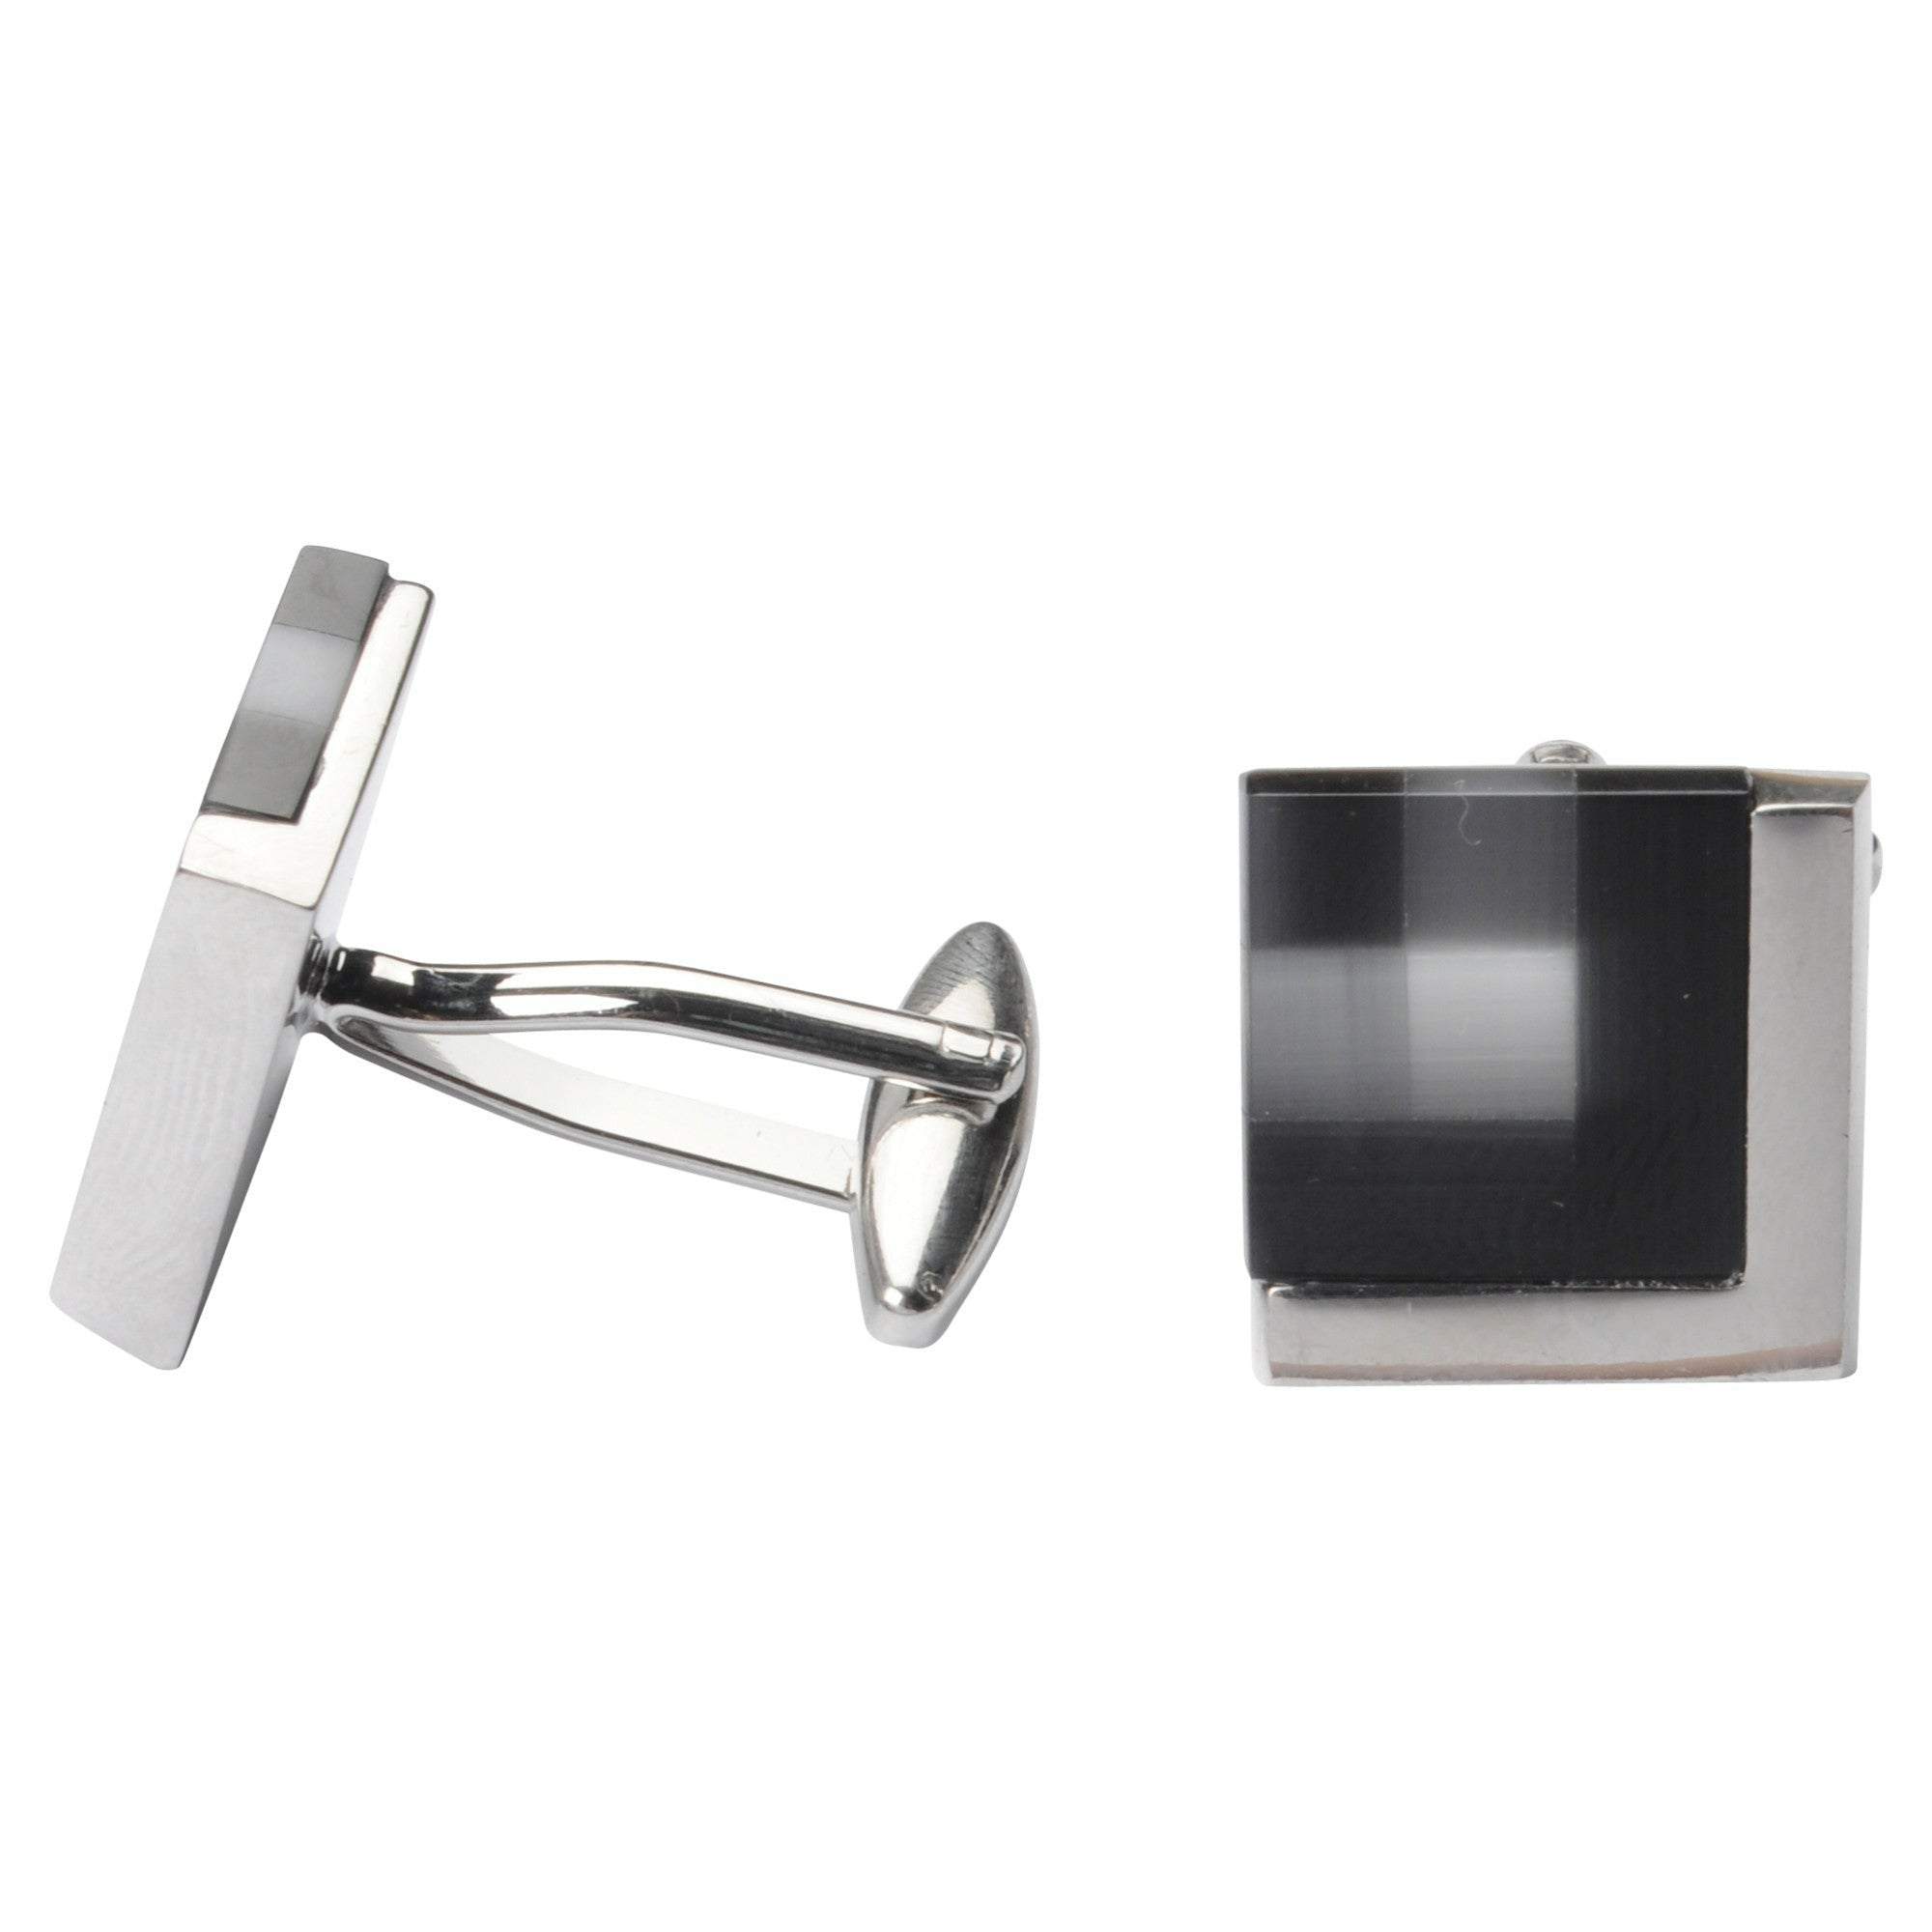 Bennett Signature Cufflinks in Black - Ron Bennett Big Men's Clothing